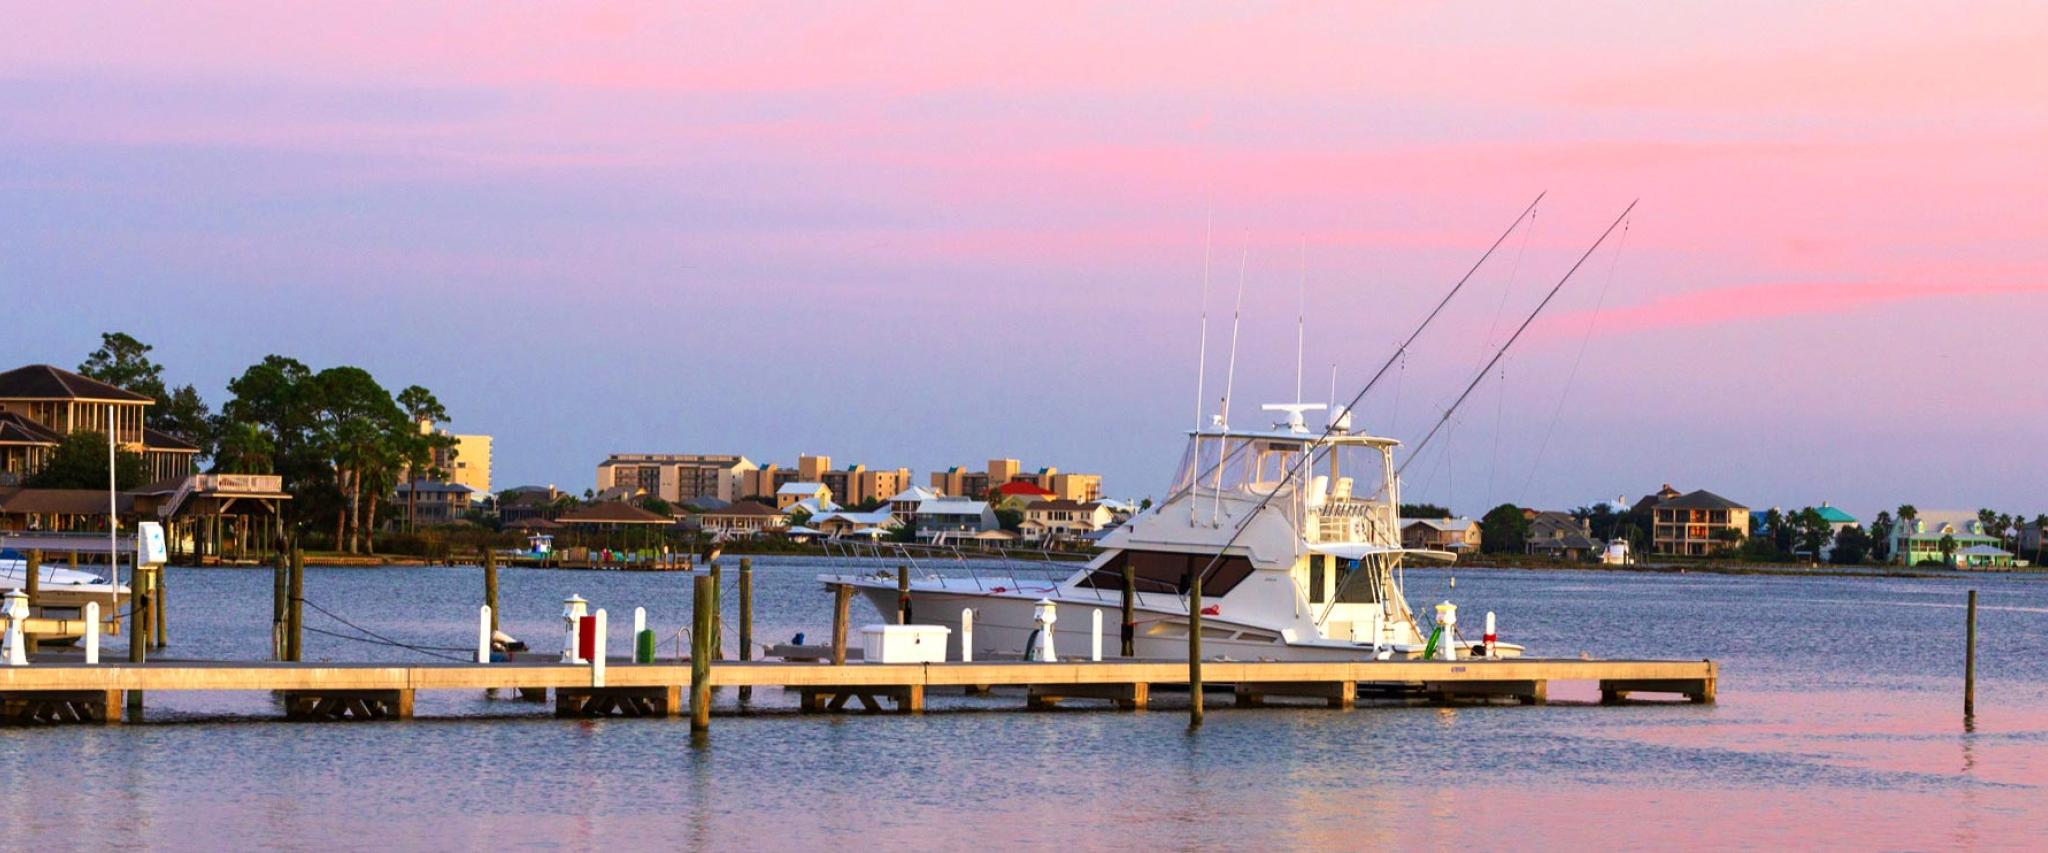 Fishing Boat at Pier in Orange Beach AL